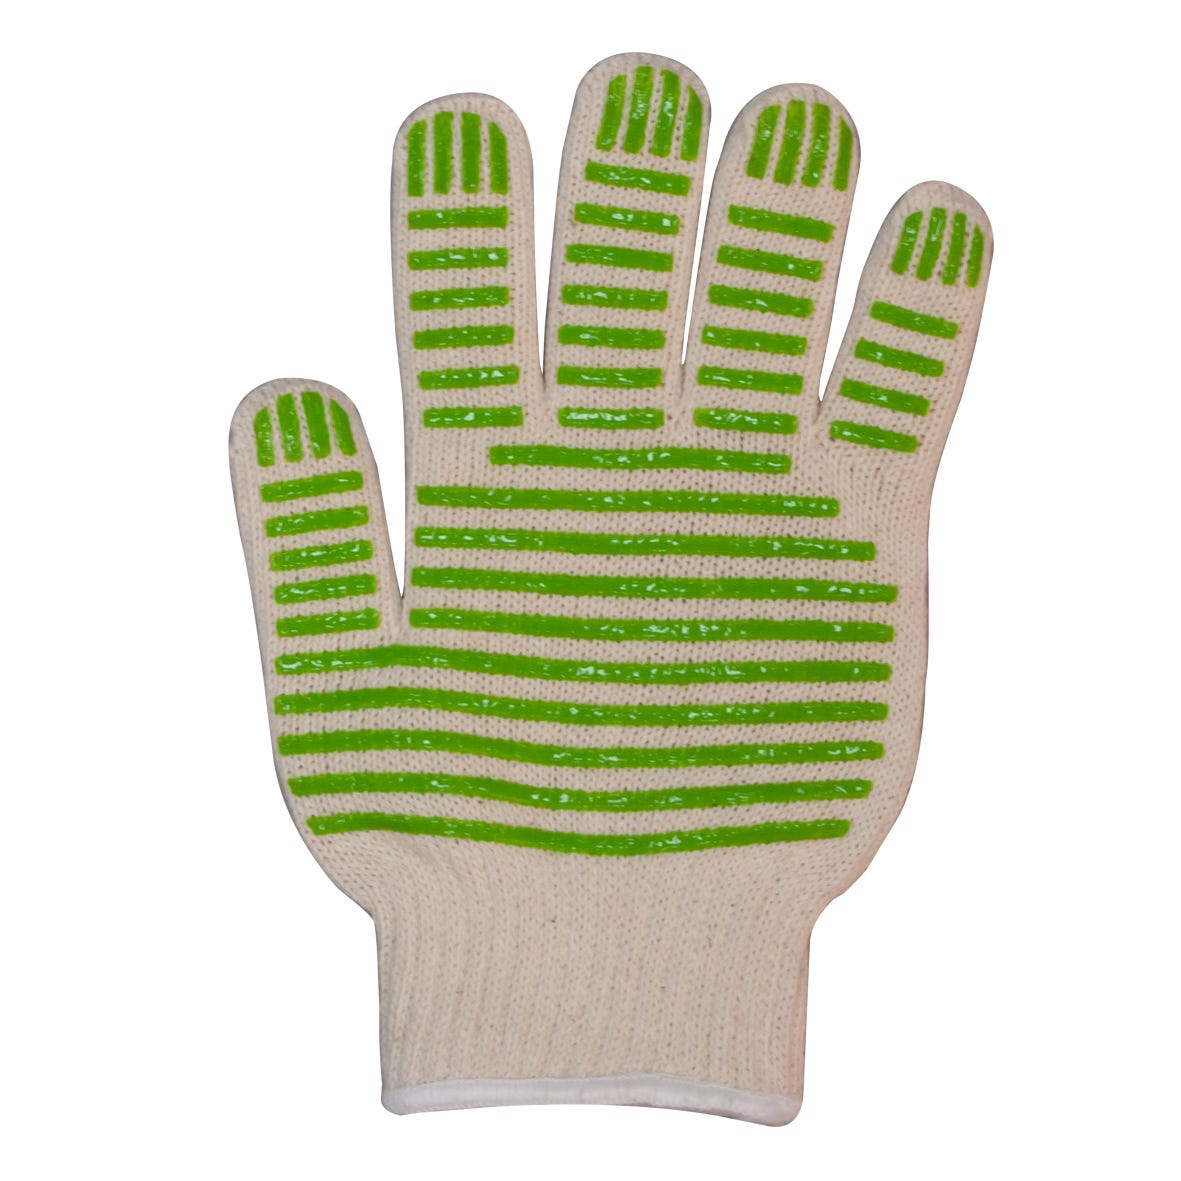 Compare cheap offers & prices of Alfred Franks and Bartlett Heat Resistant Oven Glove manufactured by Alfred Franks & Bartlett